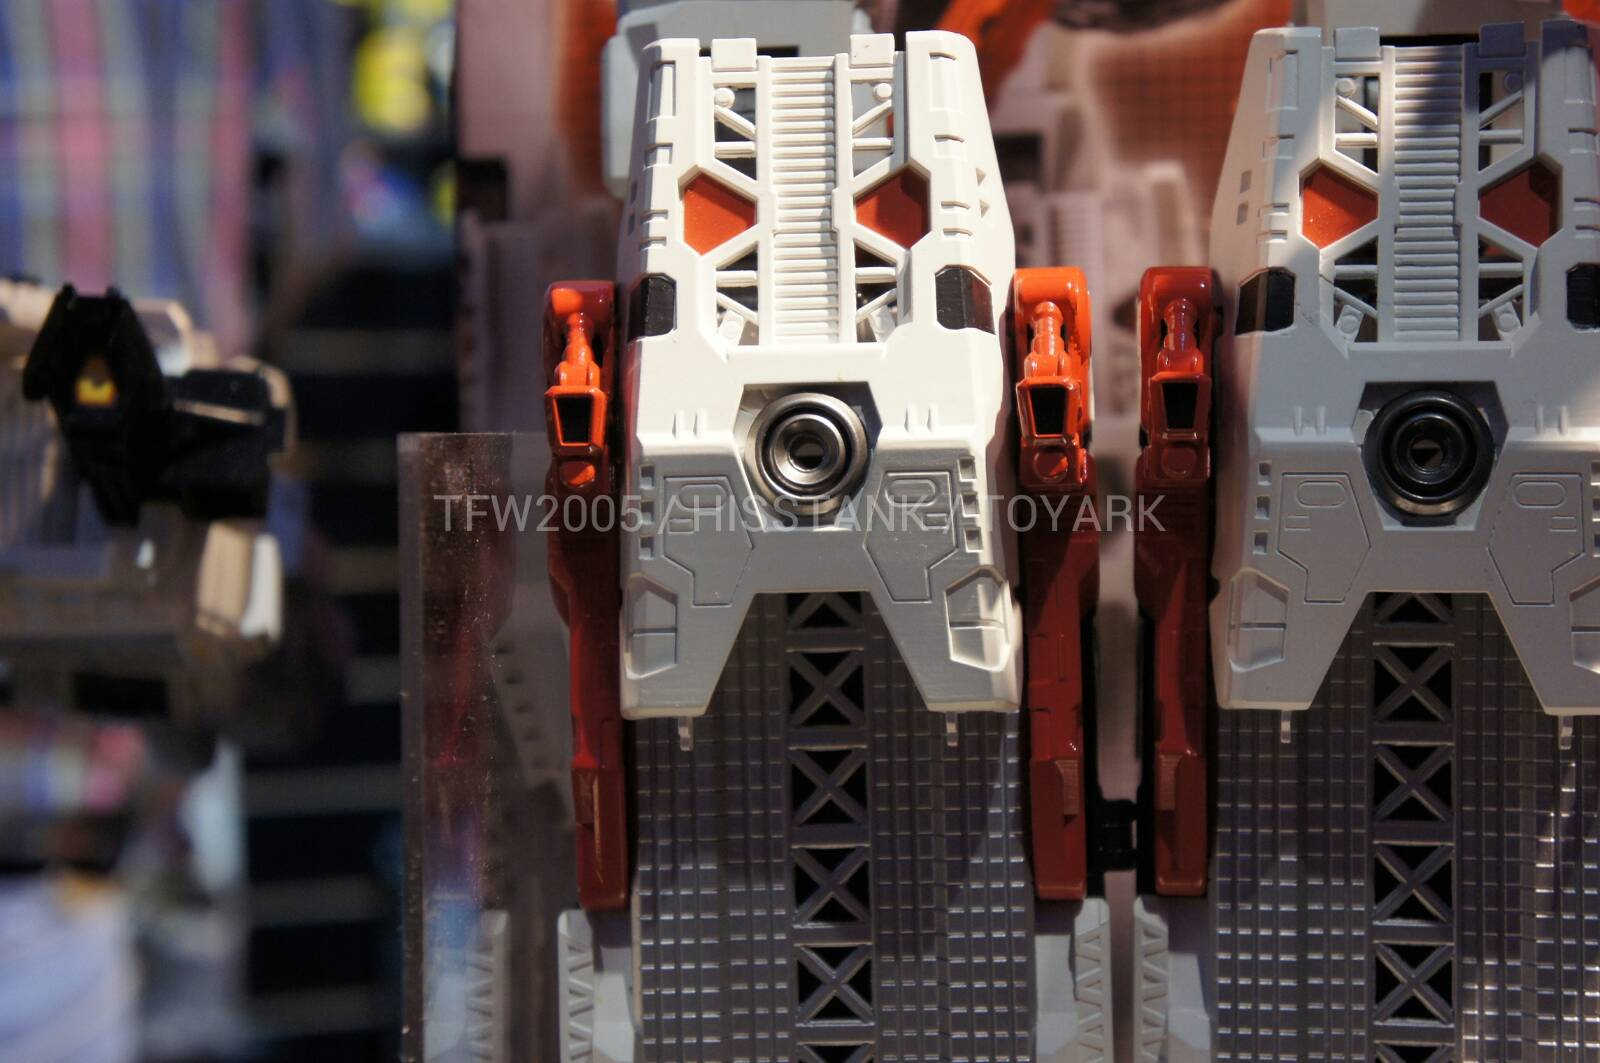 Transformers-Metroplex-Toy-Fair-2013-020